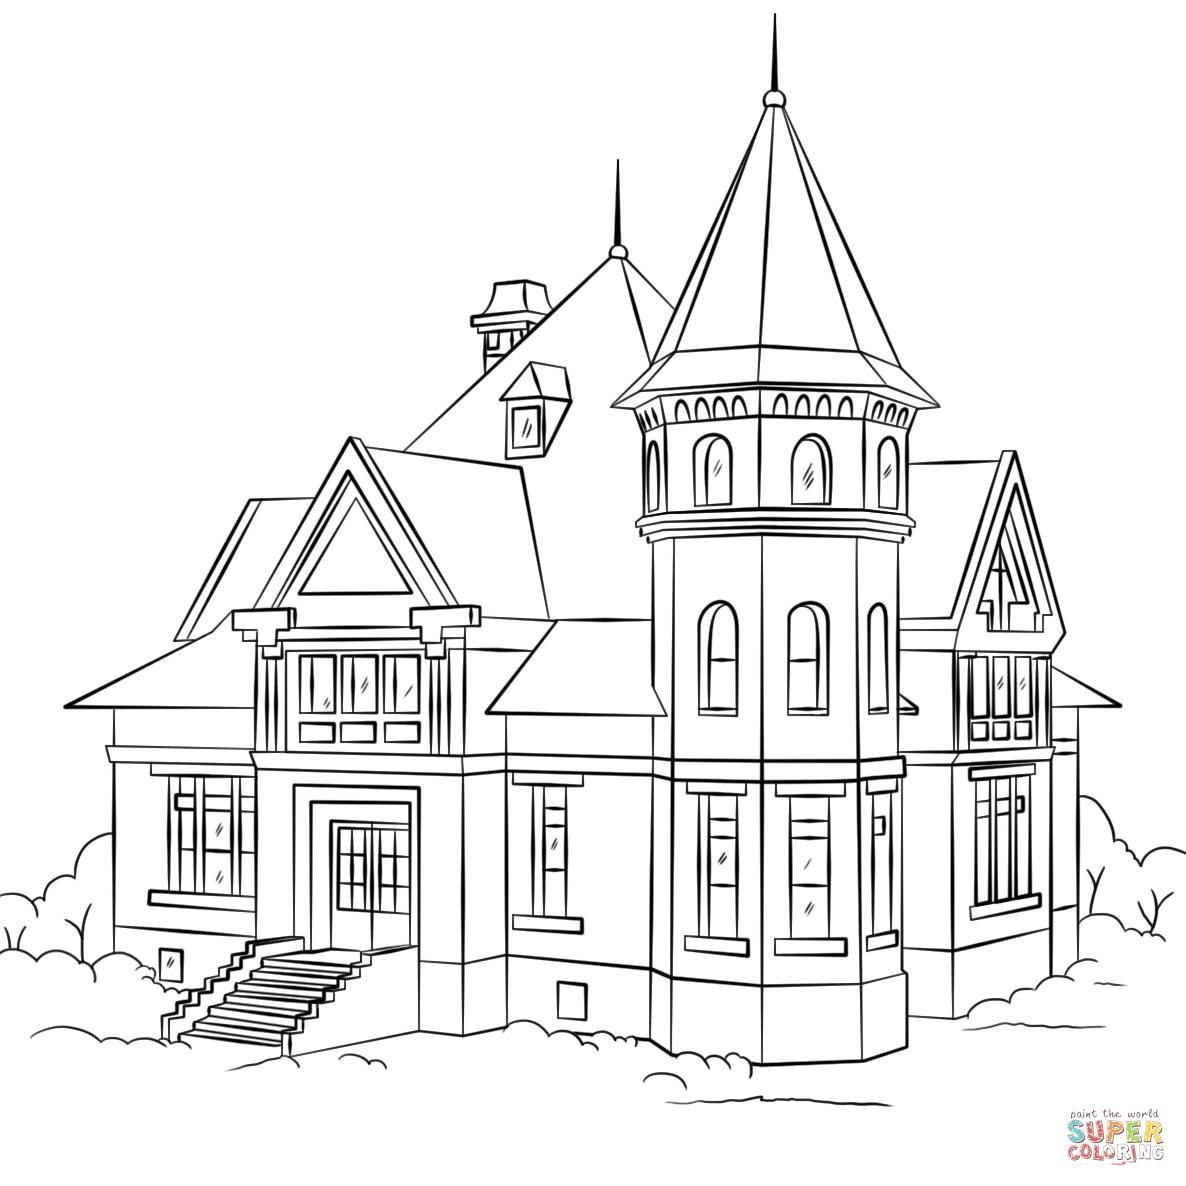 coloring picture house inside house coloring pages at getcoloringscom free picture house coloring